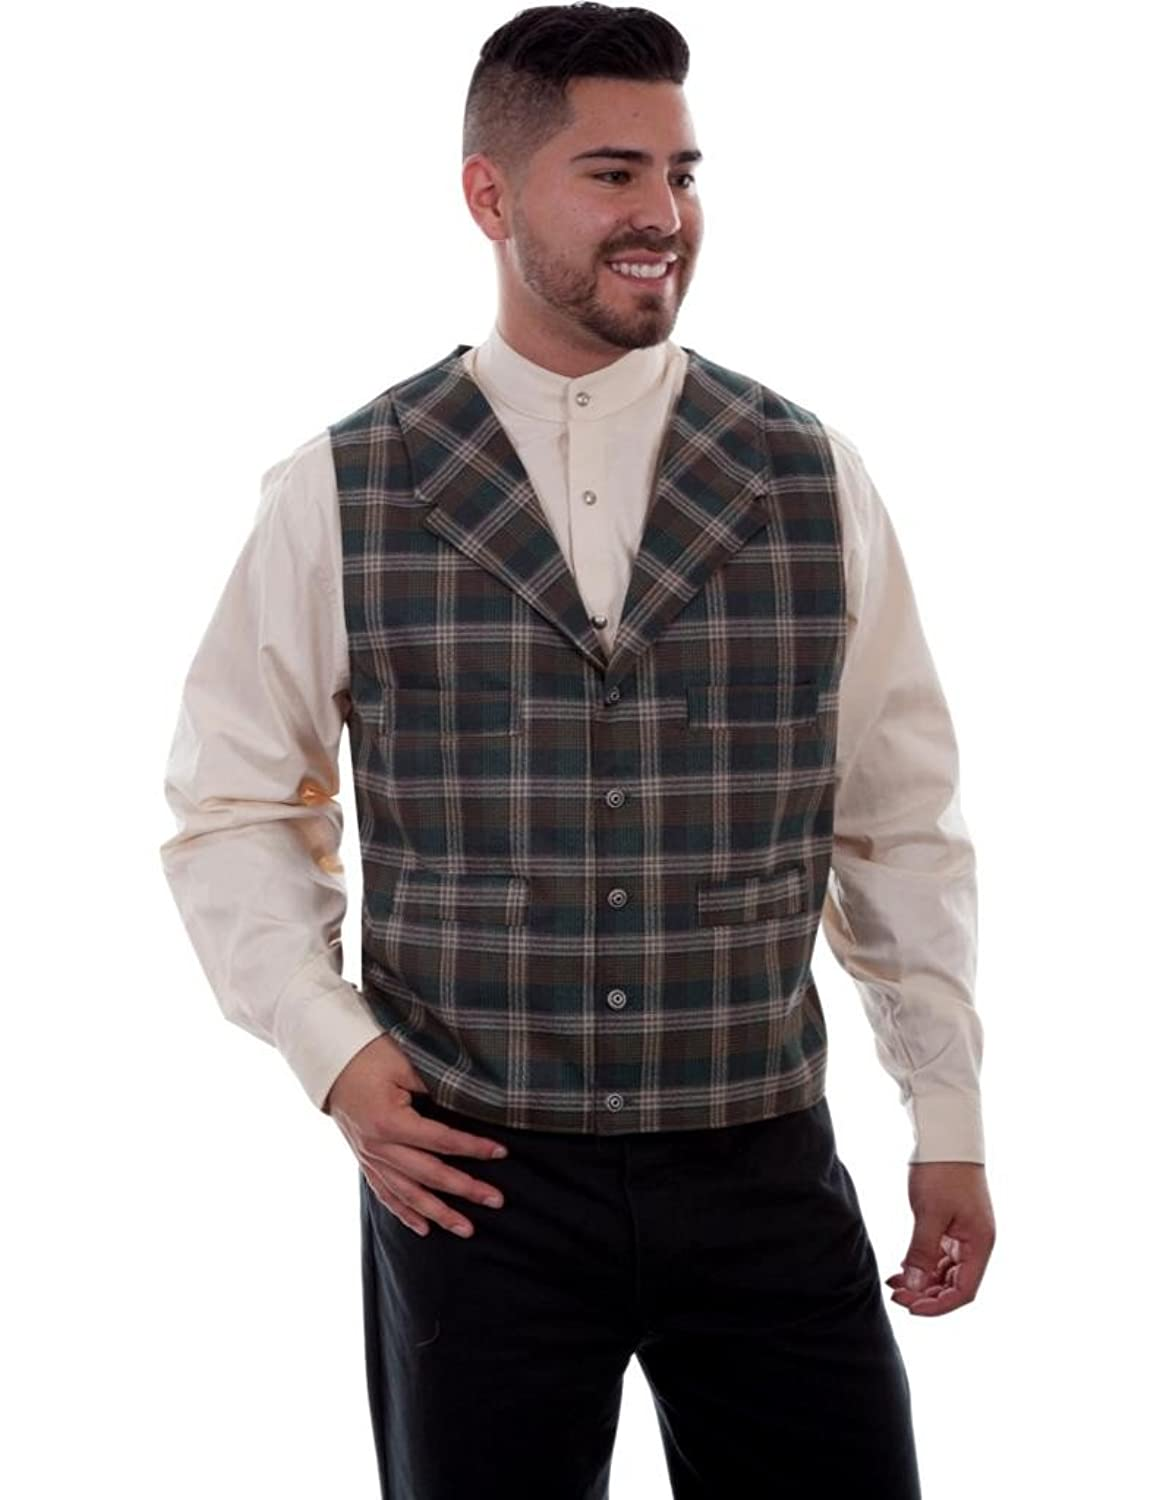 Men's Vintage Vests, Sweater Vests Scully Western Vest Mens 4 Pocket Button Plaid Wahmaker 541514 $79.85 AT vintagedancer.com